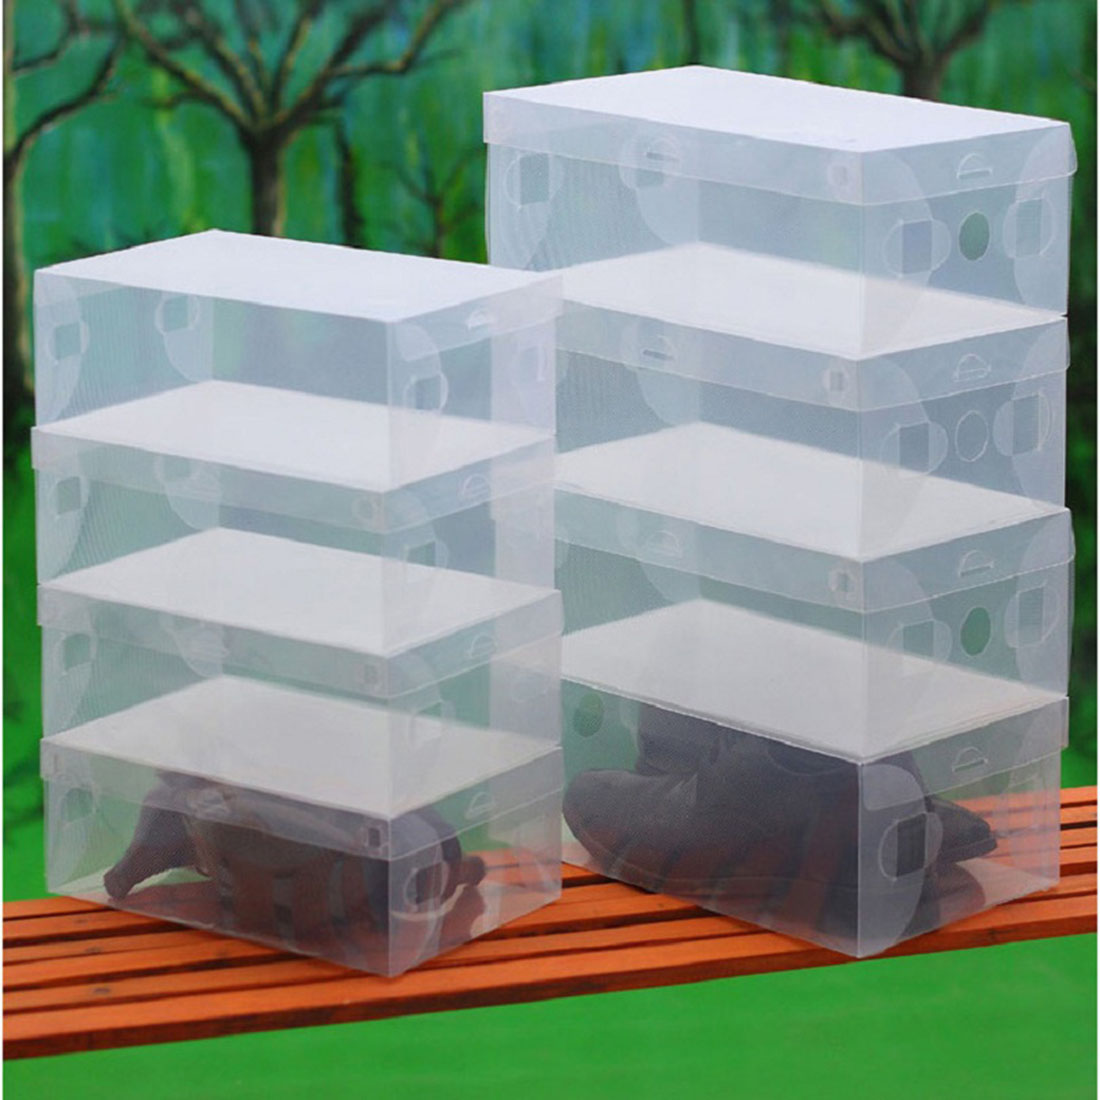 Package Content 10 x Shoes Boxes & Useful 10Pcs Transparent Clear Plastic Shoes Storage Boxes Foldable ...